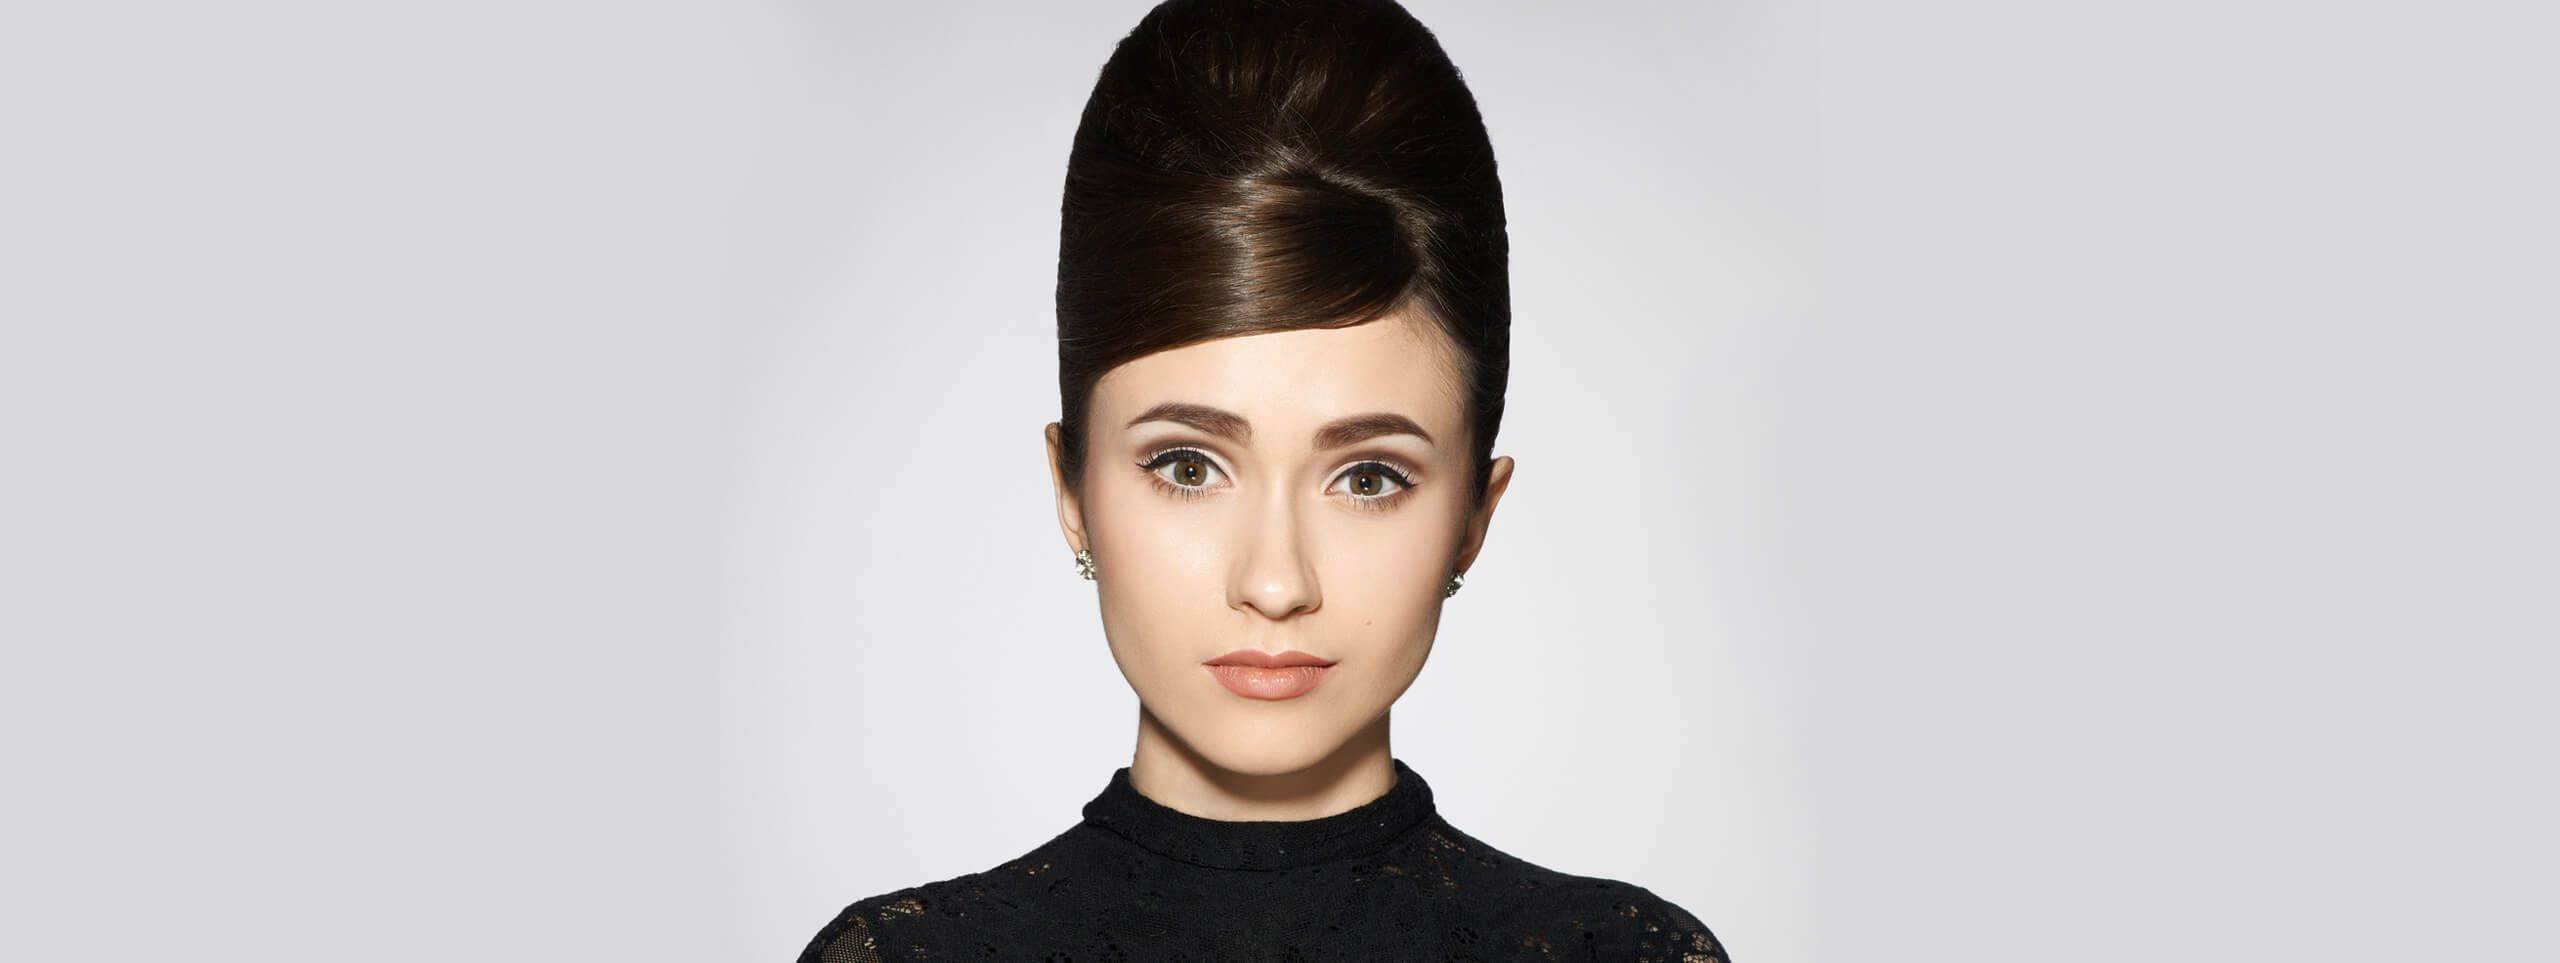 Model with her hair down up in a beehive hairstyle